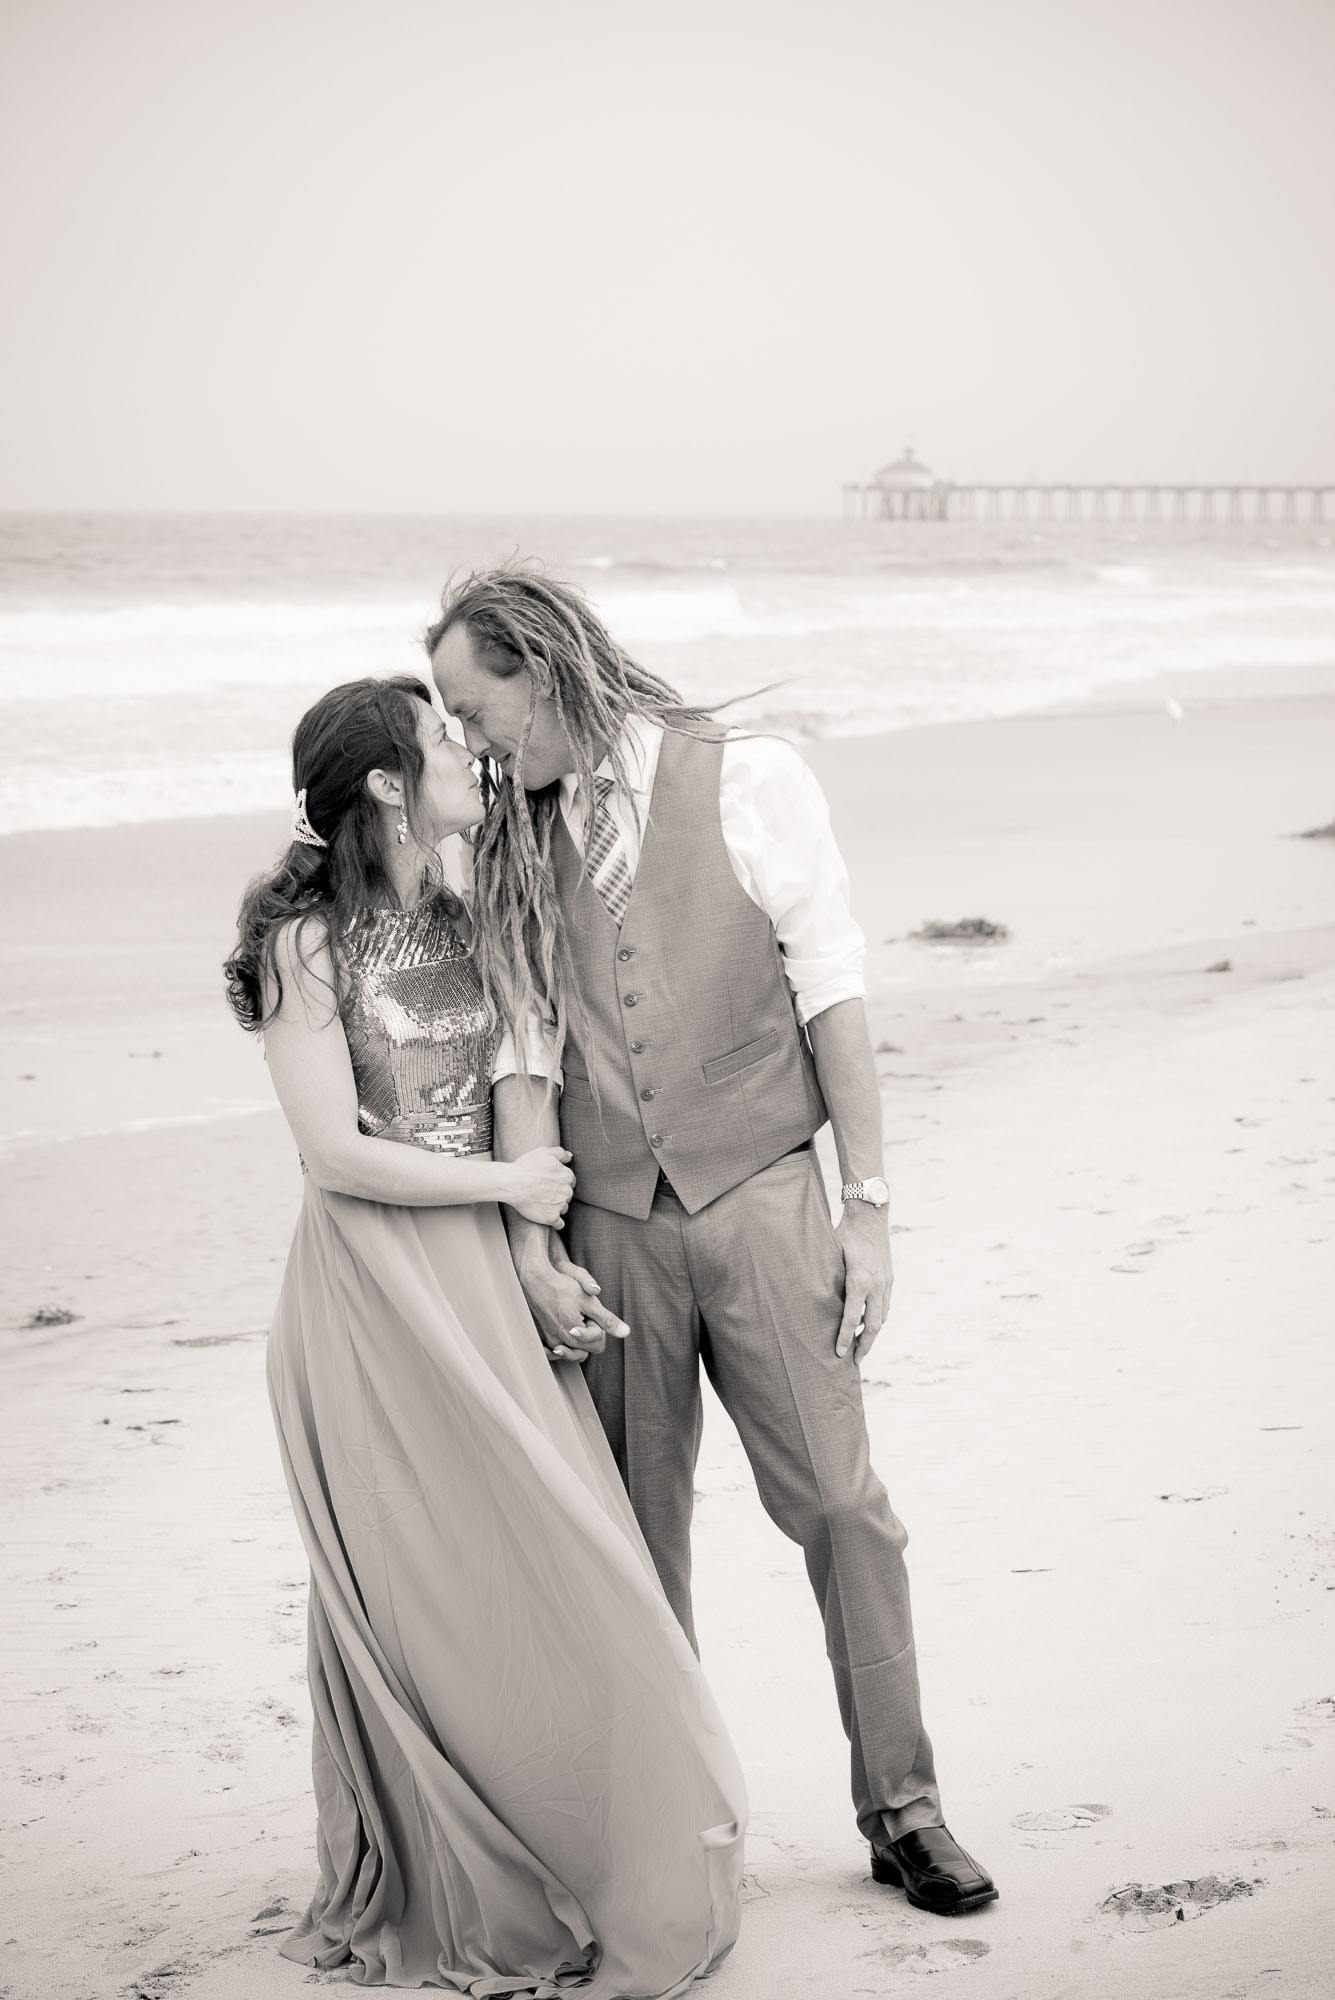 013_Alan_and_Heidi_Brianne_Nathan_San_Diego_Elopement